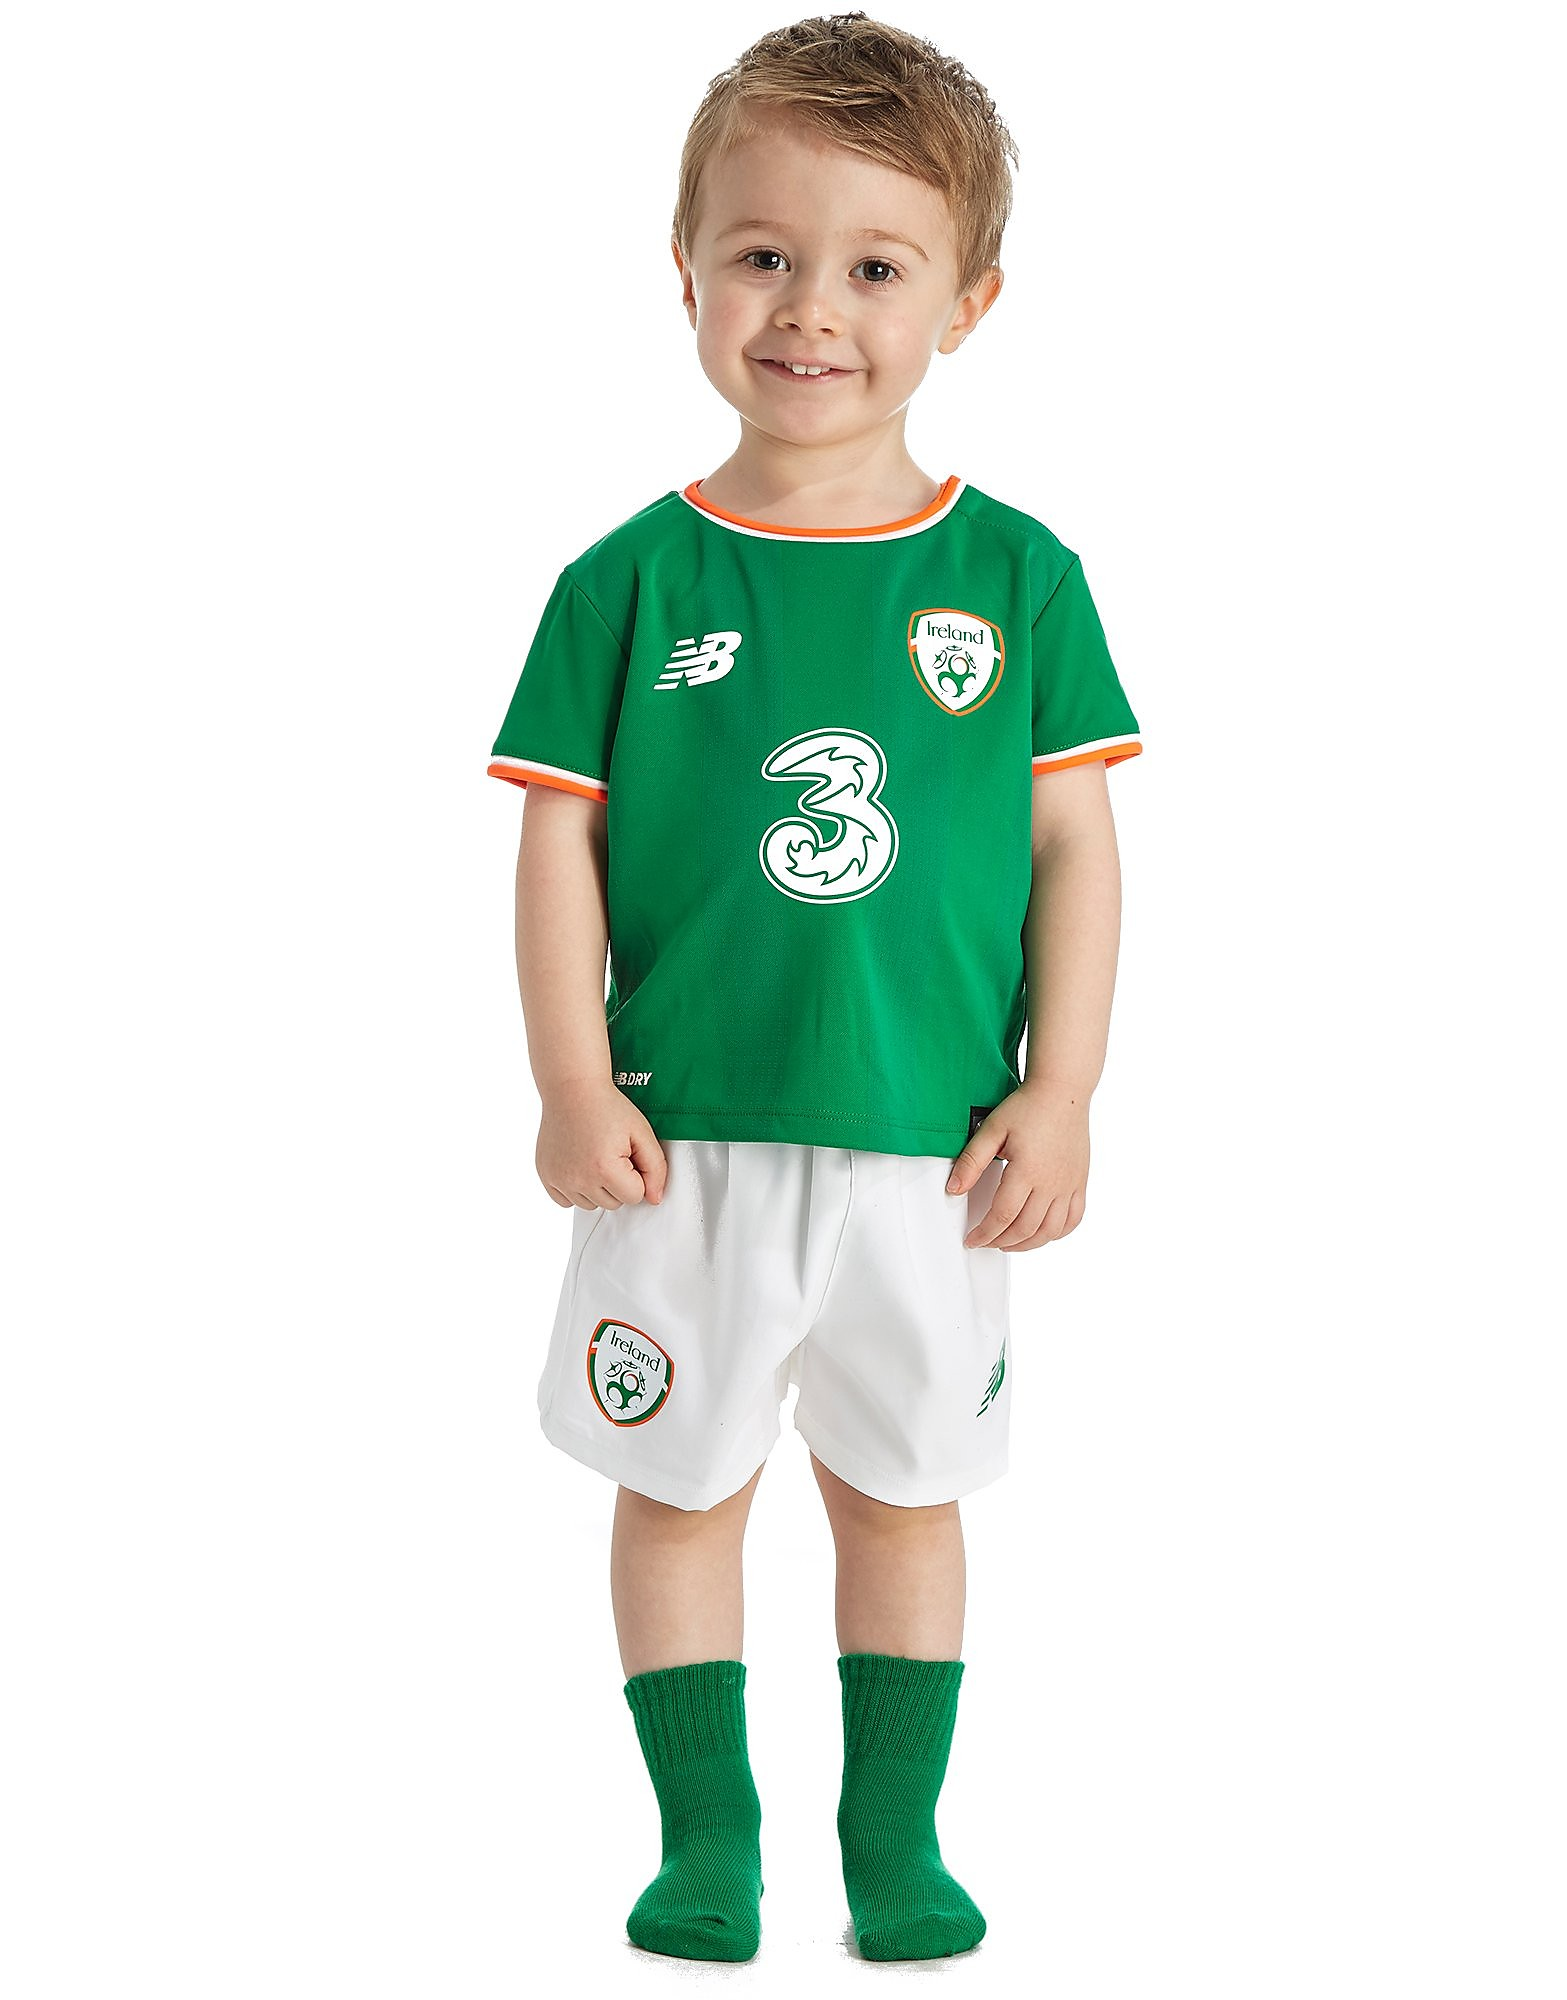 New Balance Republic of Ireland 2017/18 Home Kit Baby's